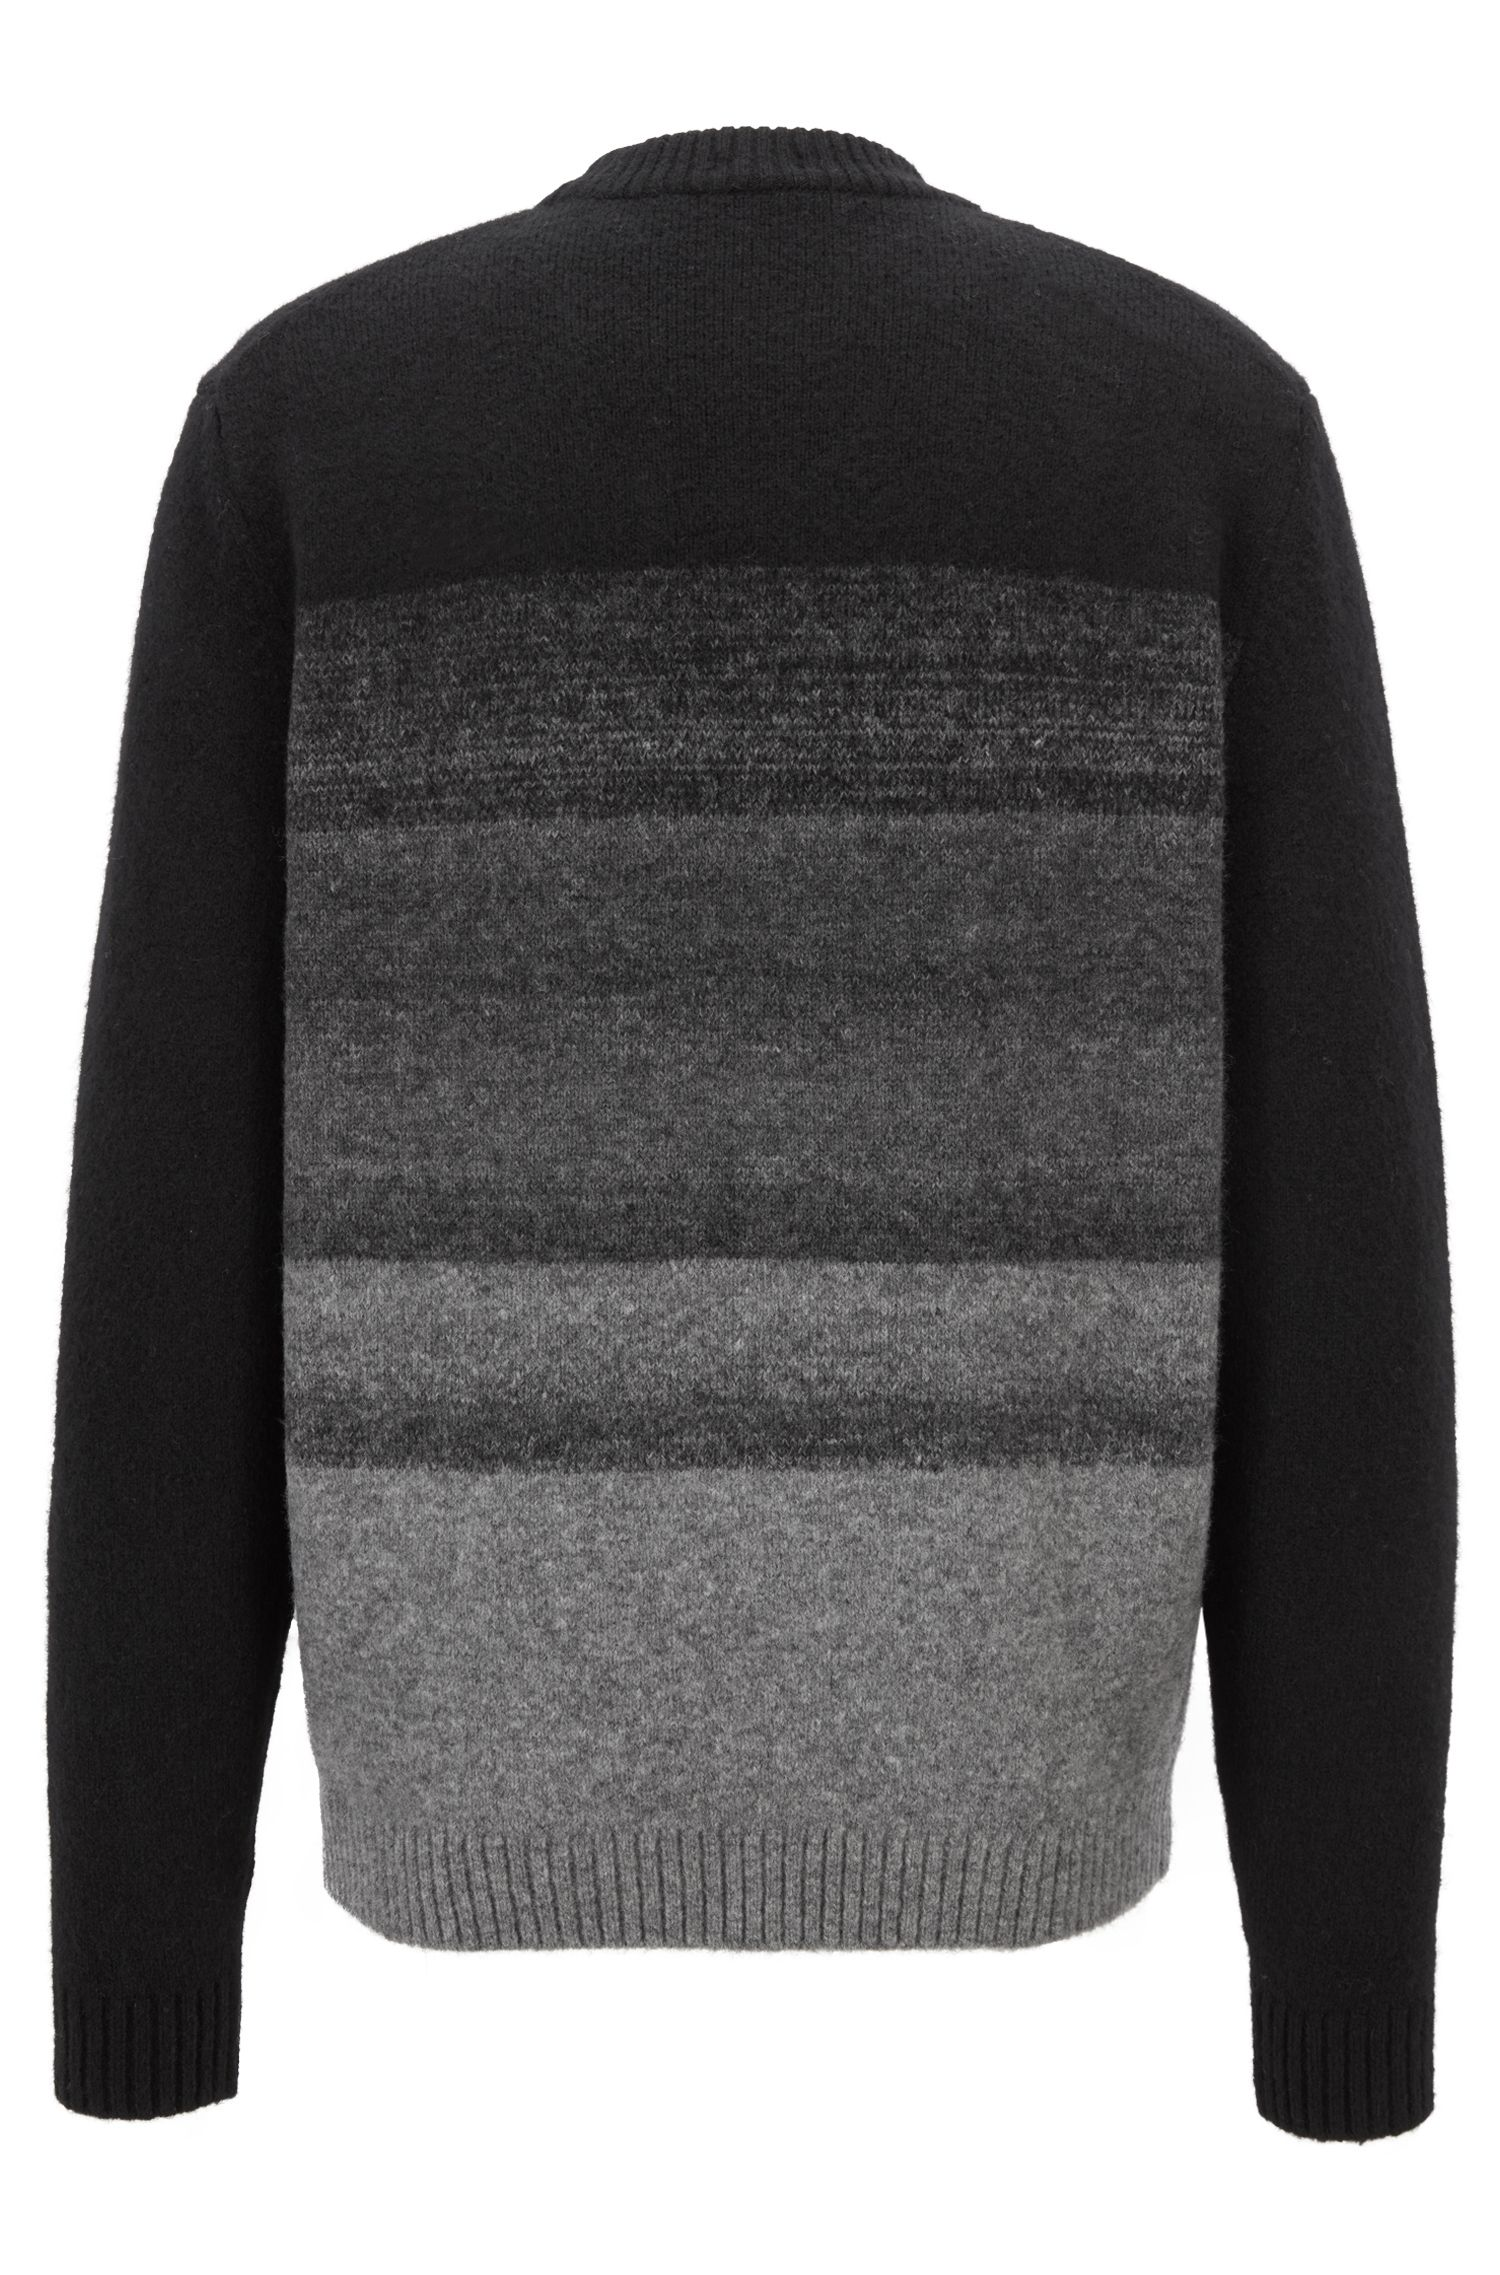 Knitted sweater in a wool blend with dégradé effect, Black